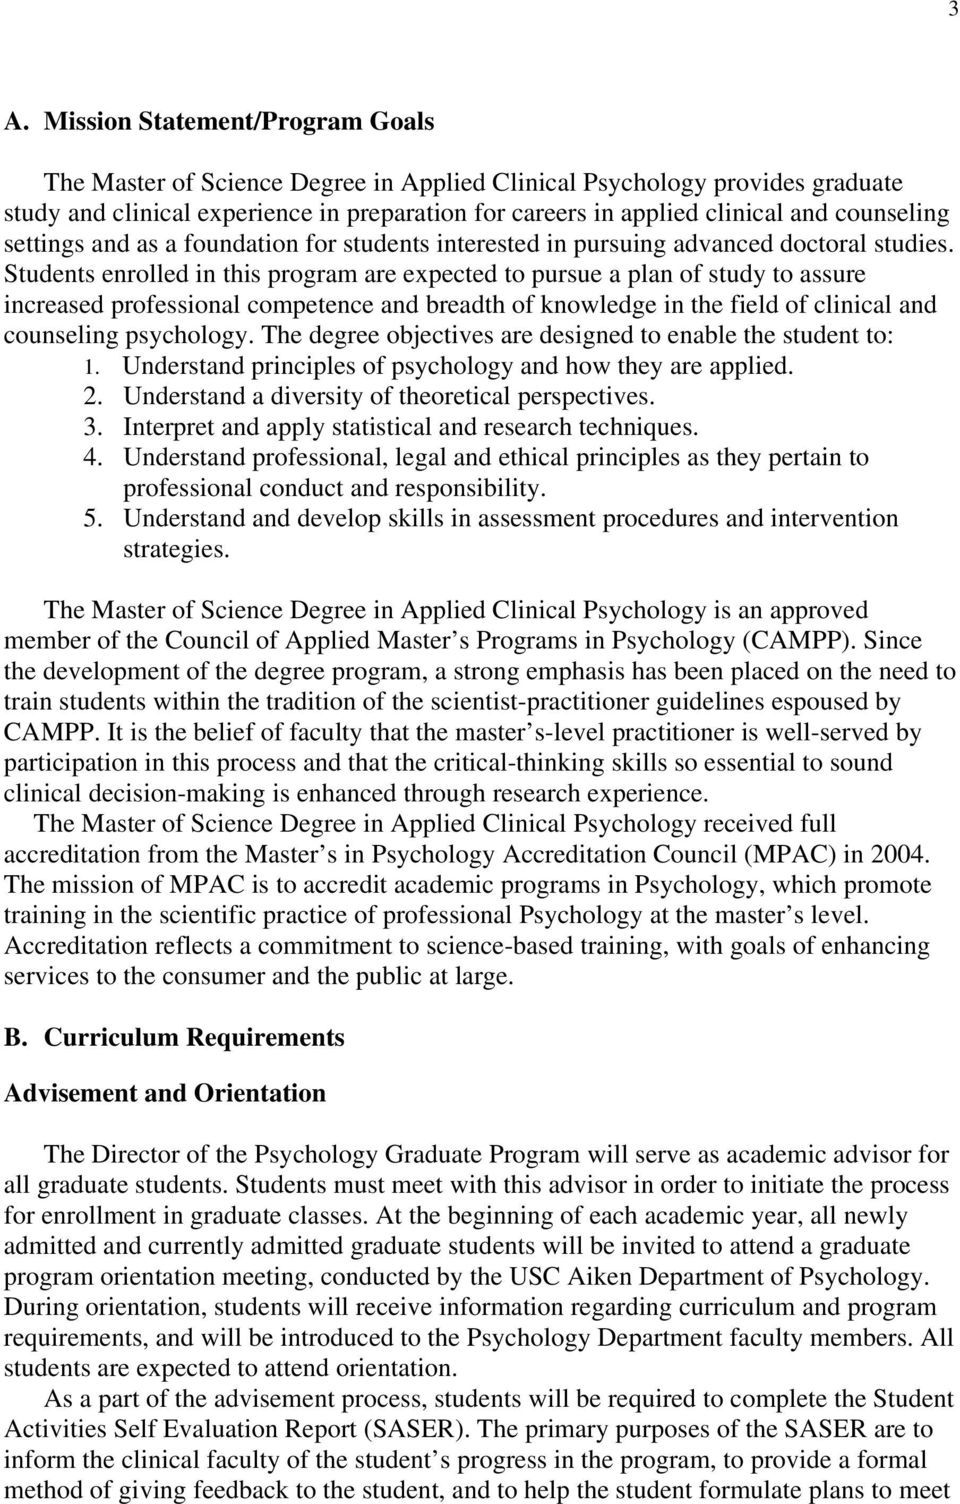 Students enrolled in this program are expected to pursue a plan of study to assure increased professional competence and breadth of knowledge in the field of clinical and counseling psychology.